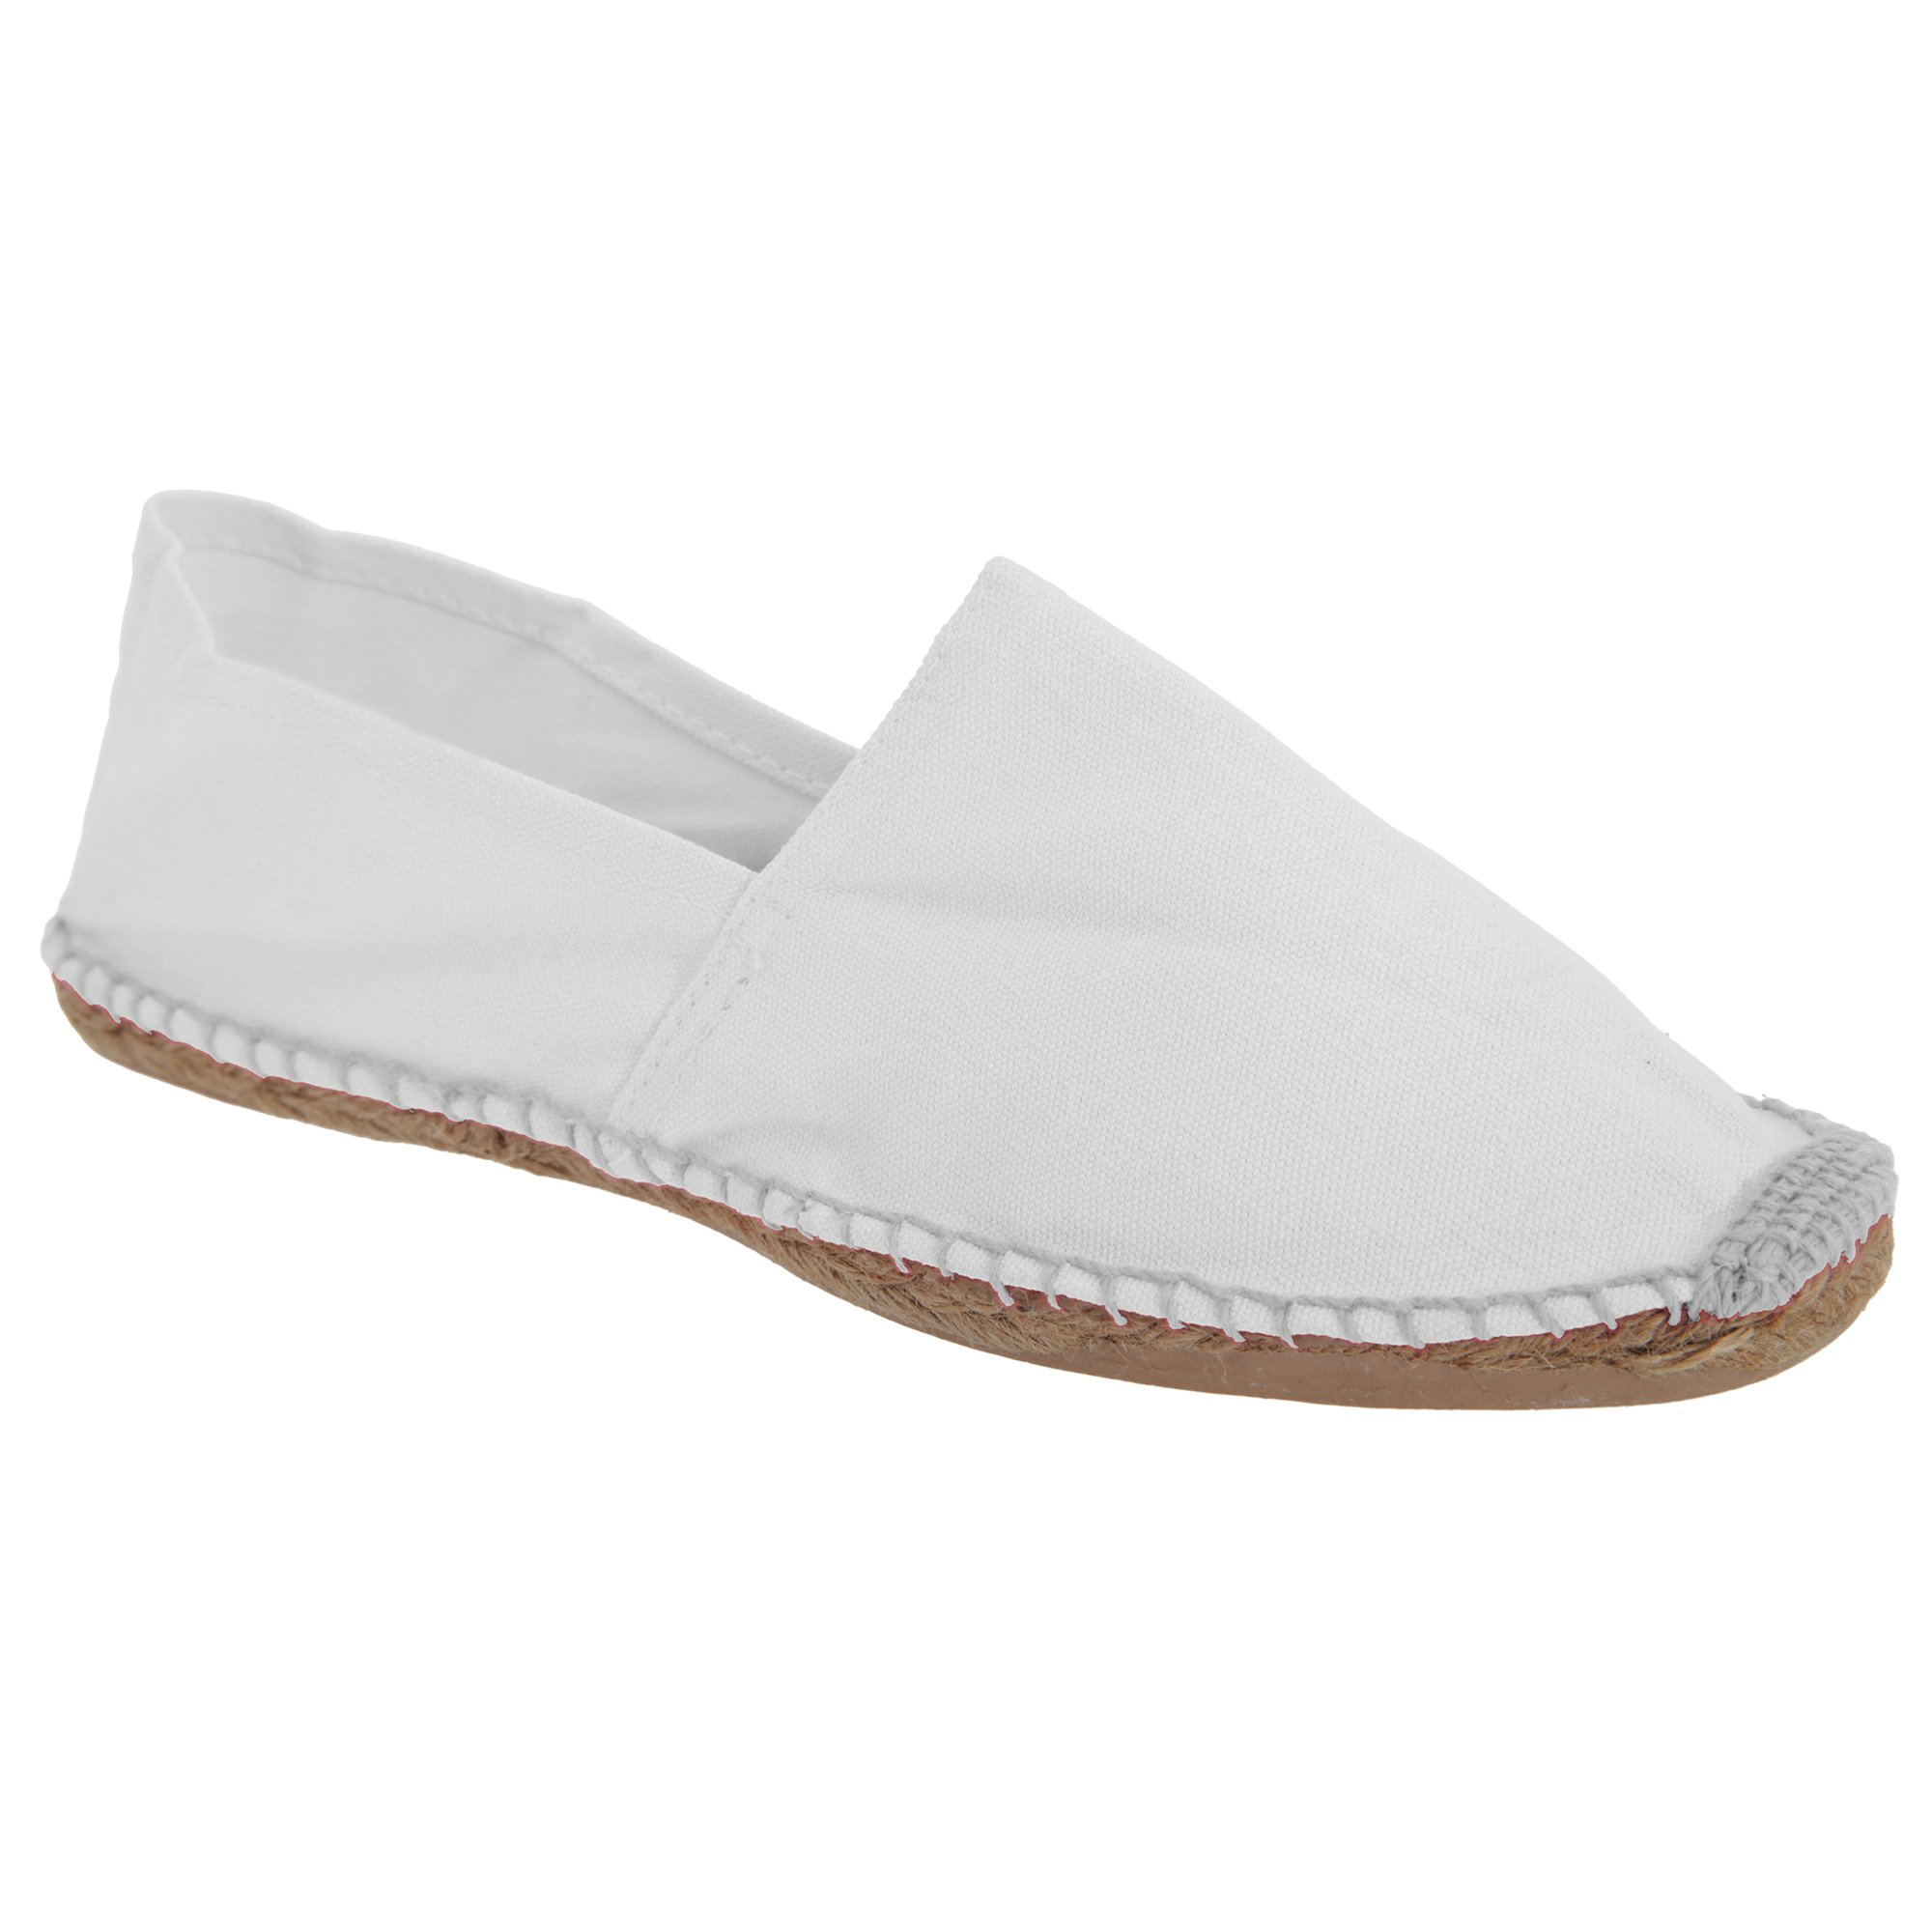 B&C Paradise Mens Vibrant Espadrille Shoes (8 US) (White)